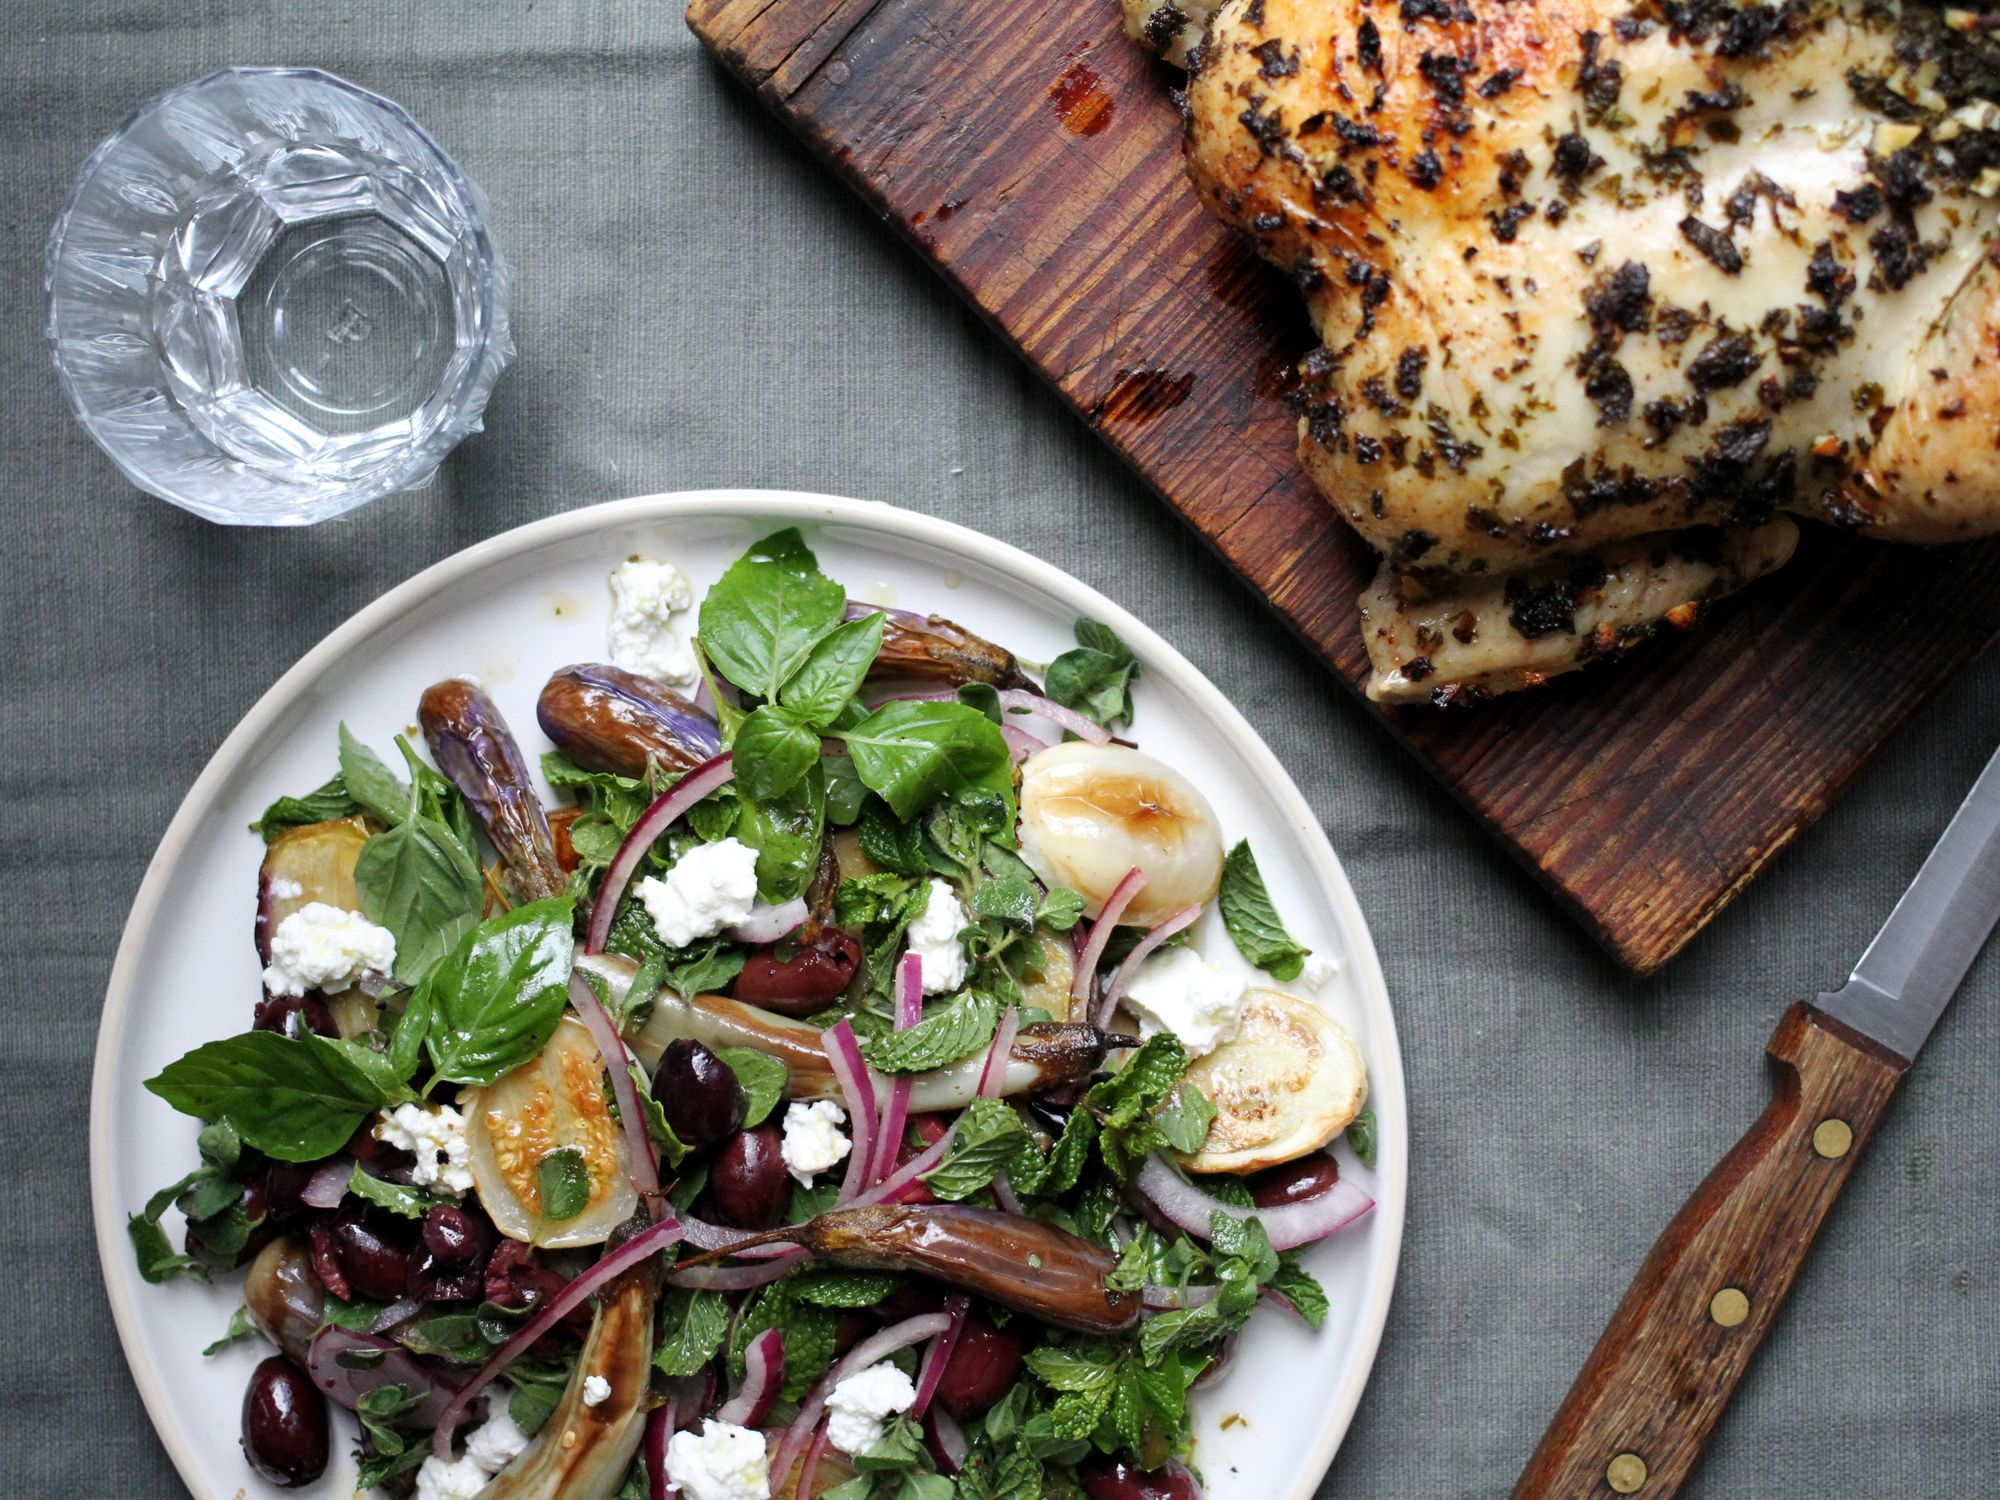 "Brighten up any day with this simple roast chicken and fresh eggplant and herb salad. Get the recipe for <a href=""https://www.saveur.com/simple-roast-chicken-eggplant-salad-recipe/"">Rainy Day Chicken with Eggplant Salad</a>"